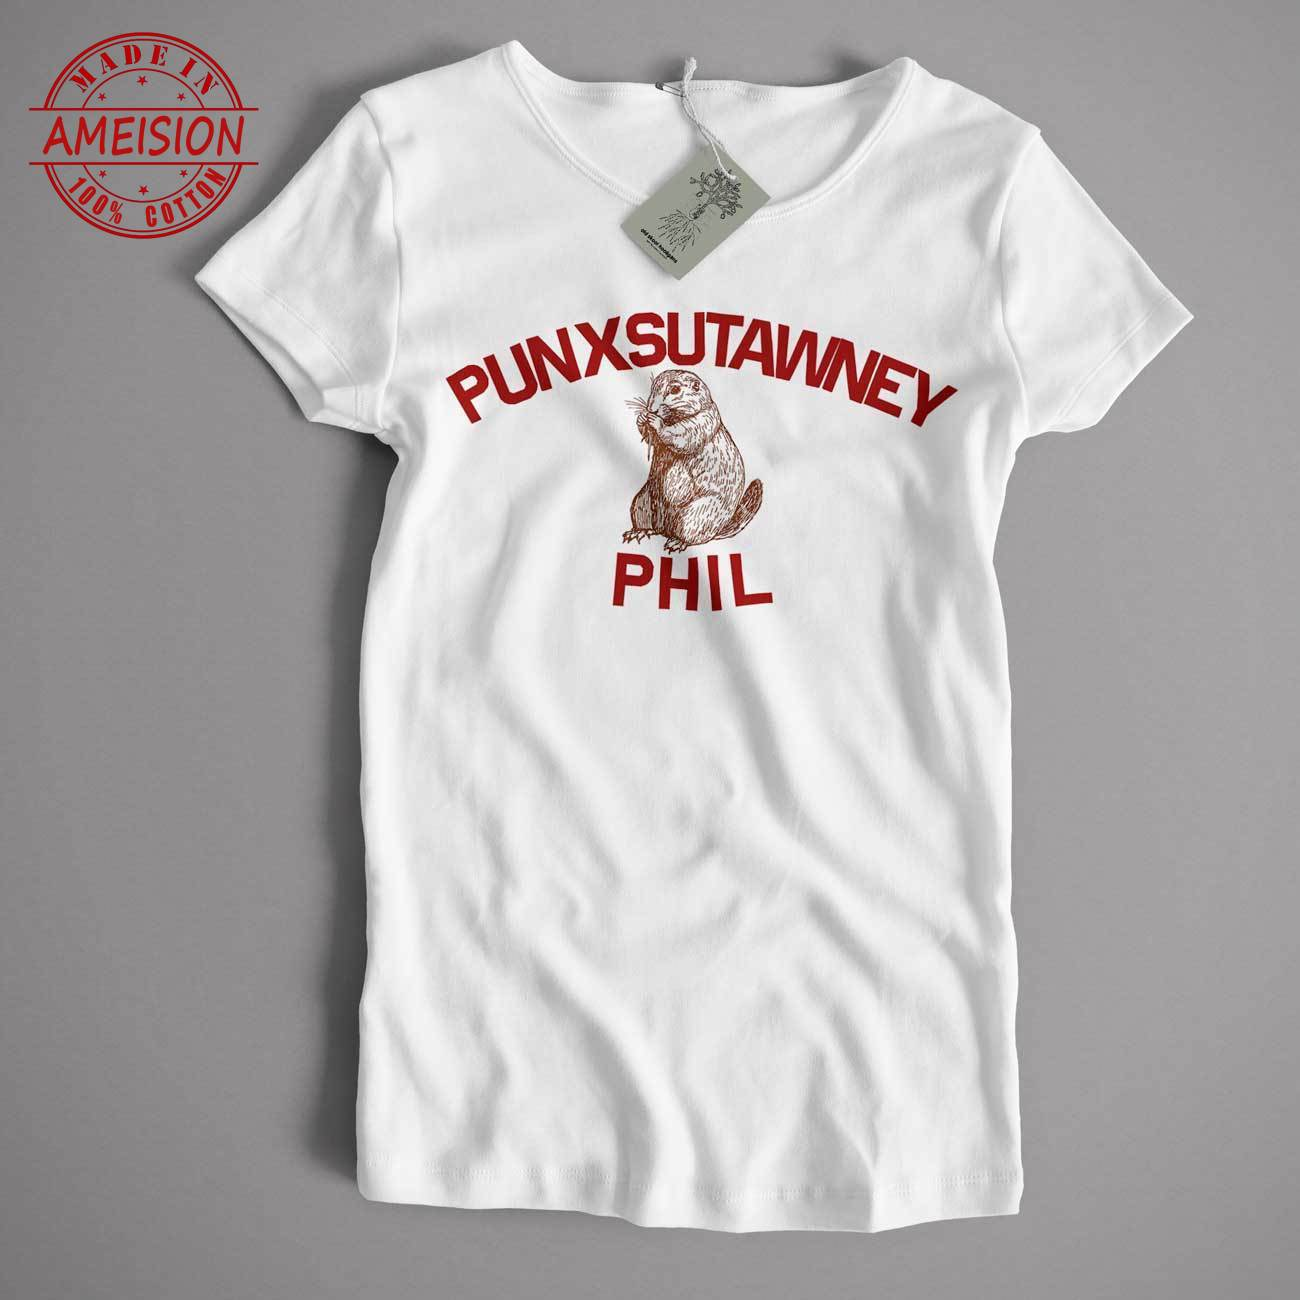 As Worn In Groundhog Day T Shirt - Punxsutawney Phil Cult Movie Comedy T Shirt